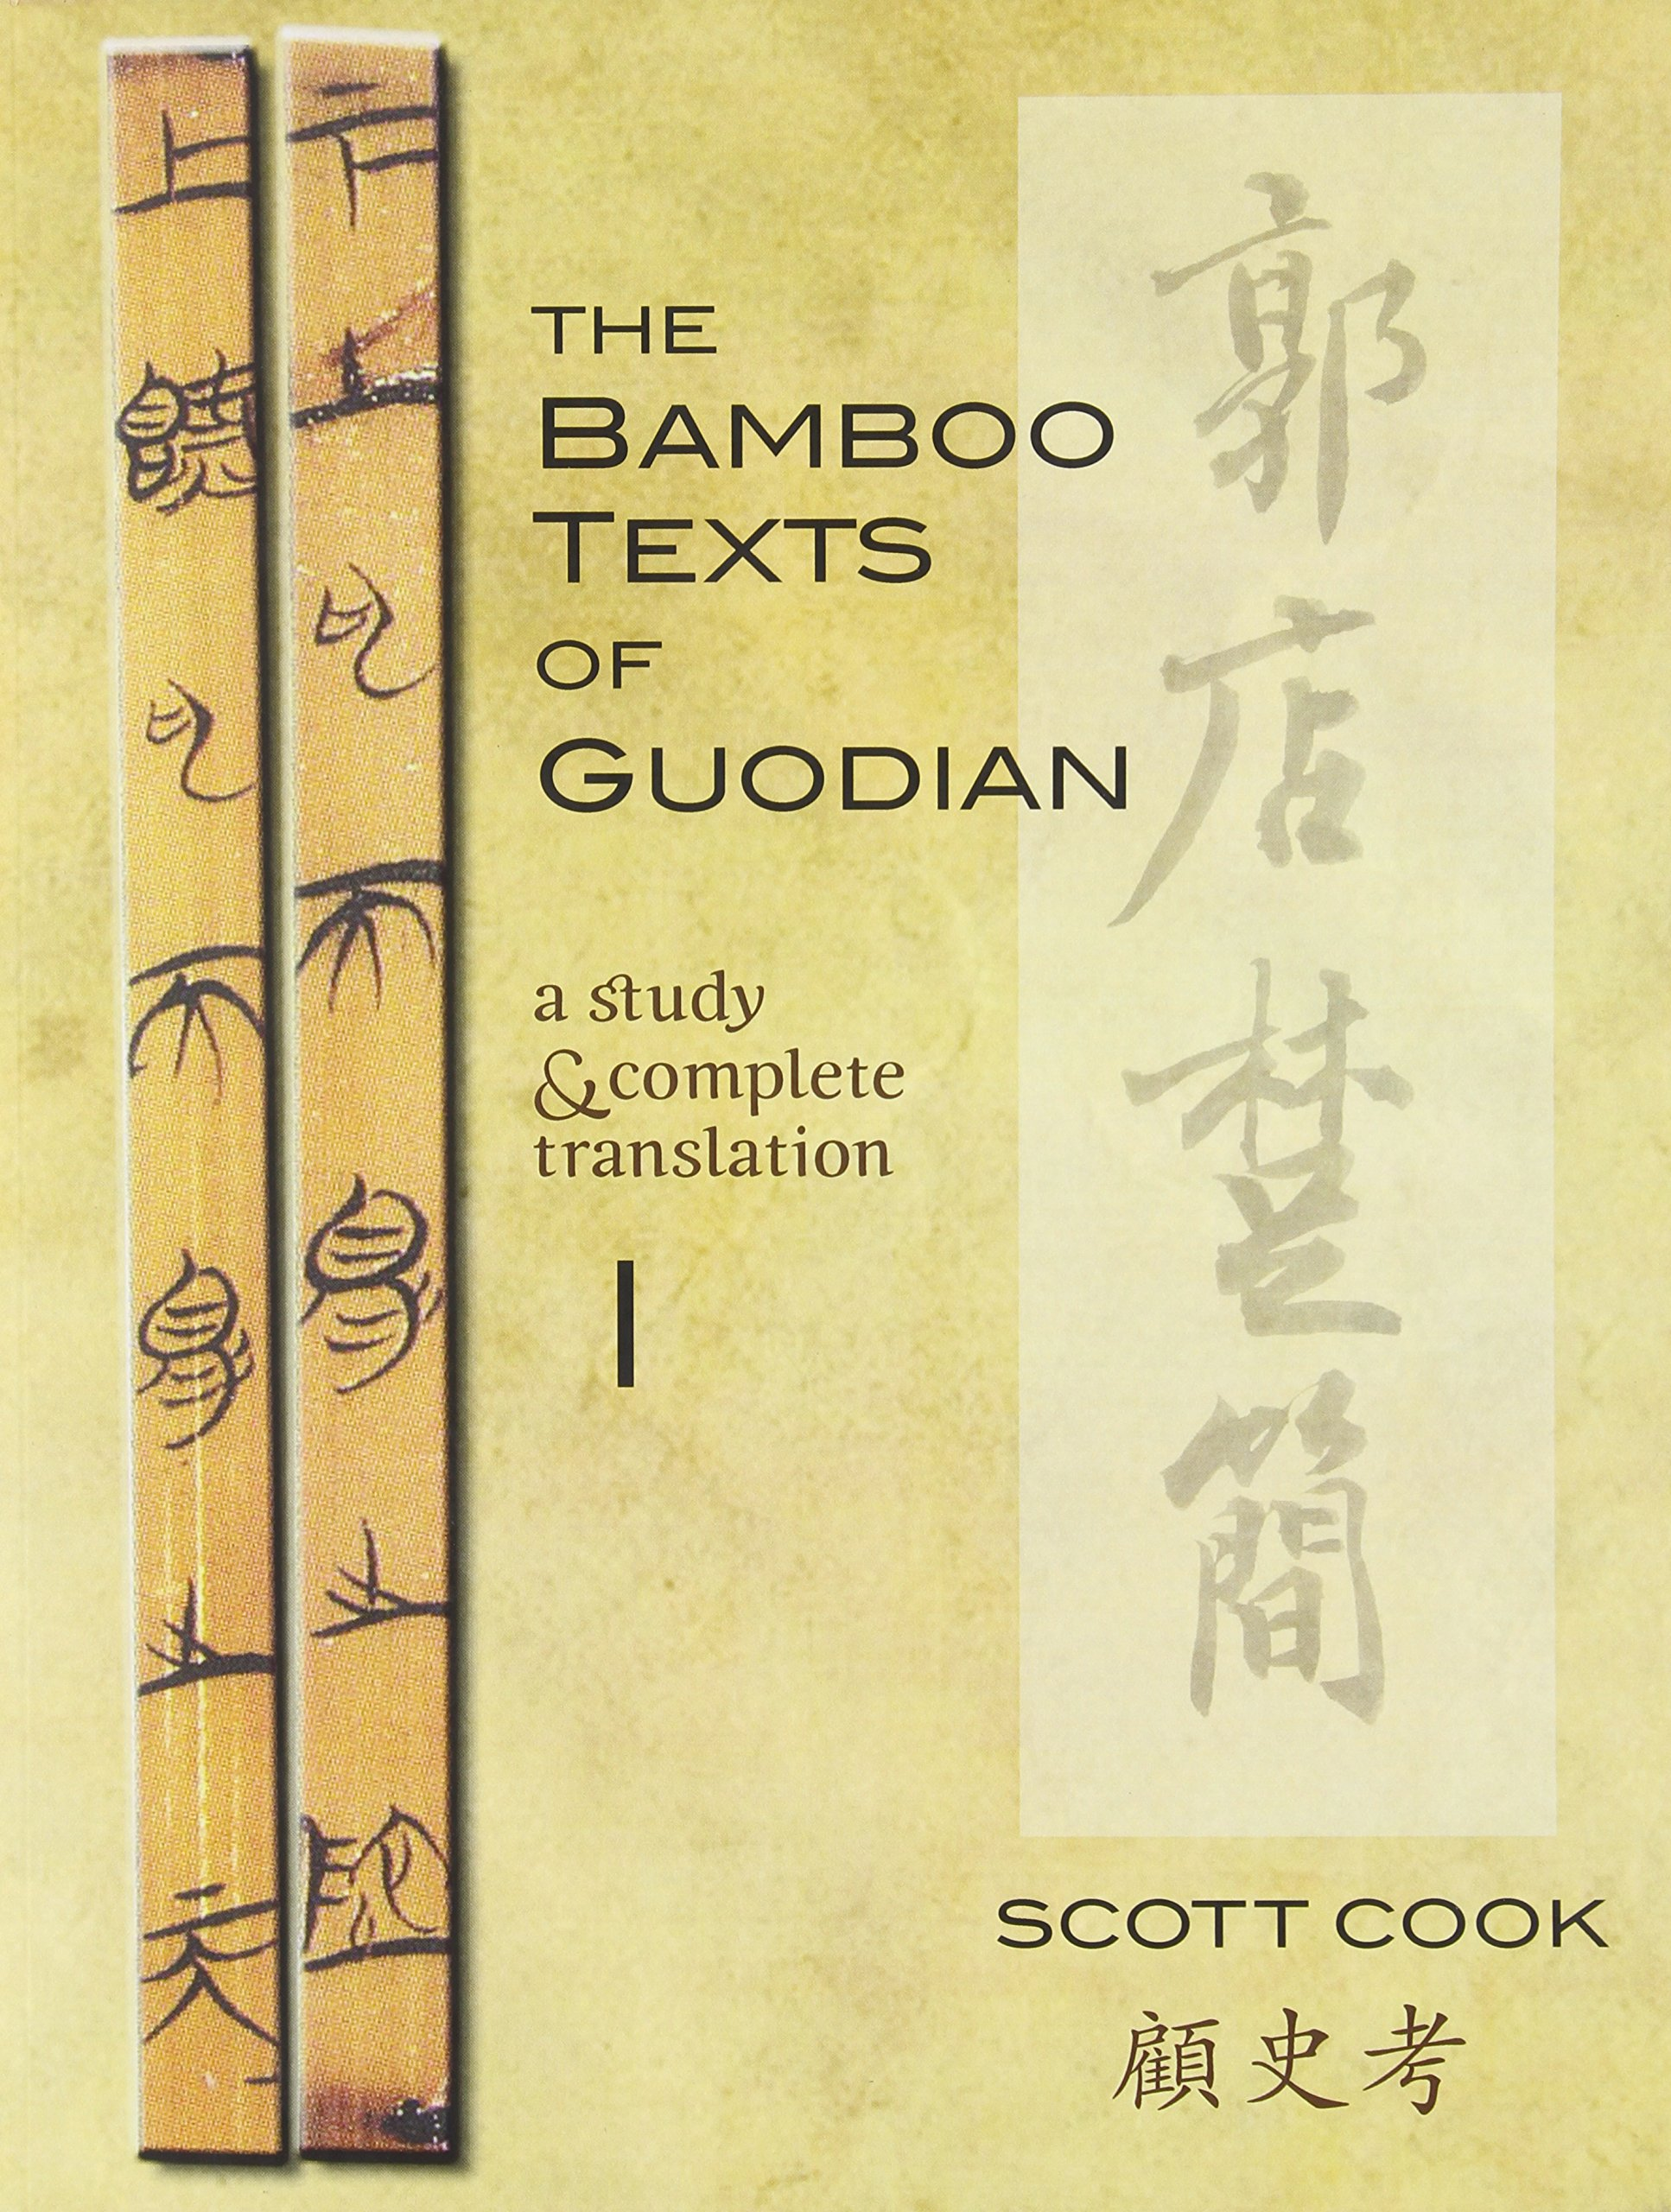 The Bamboo Texts of Guodian: A Study and Complete Translation, Volume 1 (Cornell East Asia Series) PDF